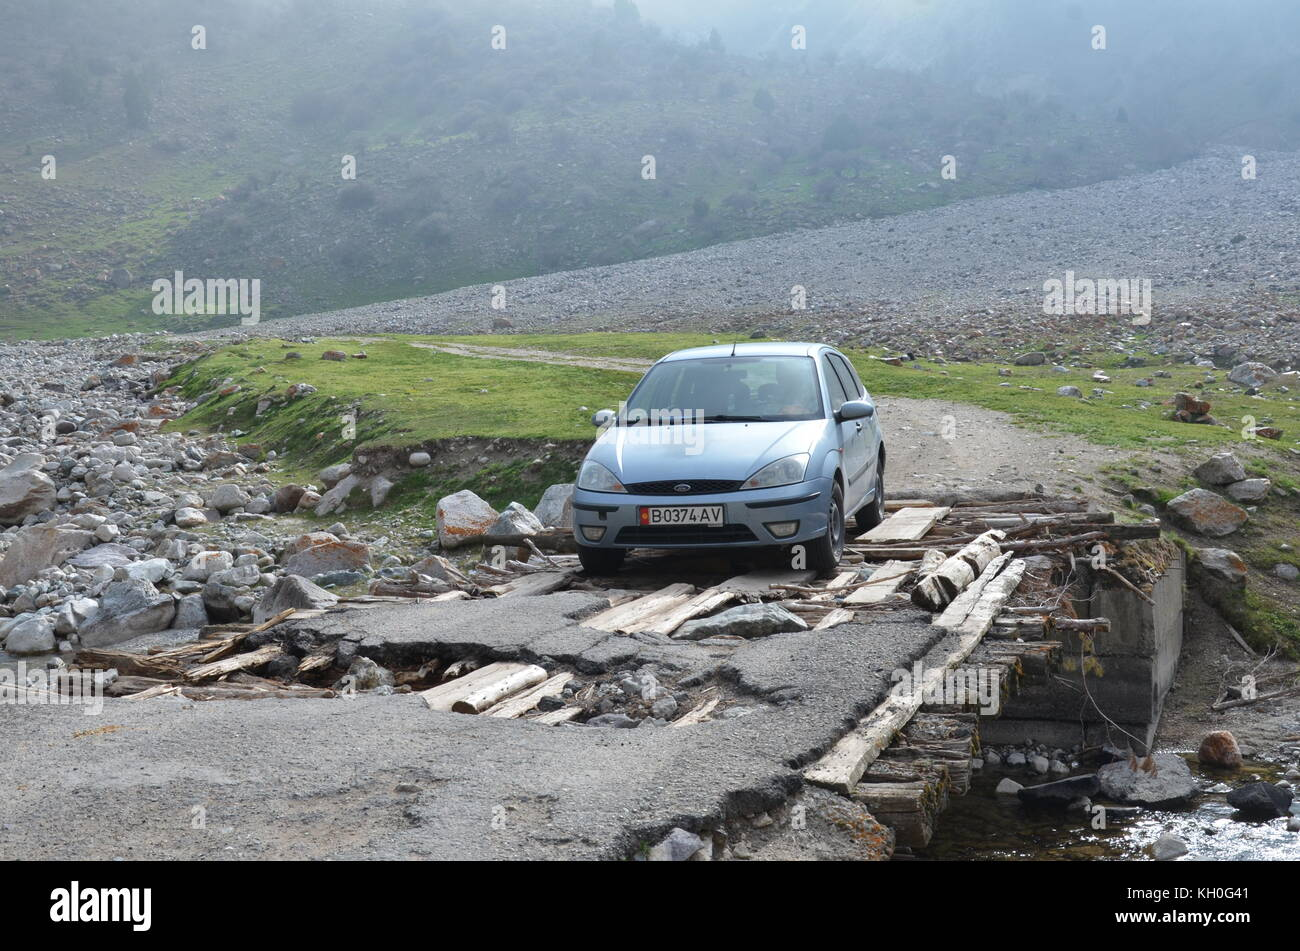 A car tries to drive over a shaky unstable wooden bridge in the middle of nowhere in Kyrgystan, Asia. - Stock Image